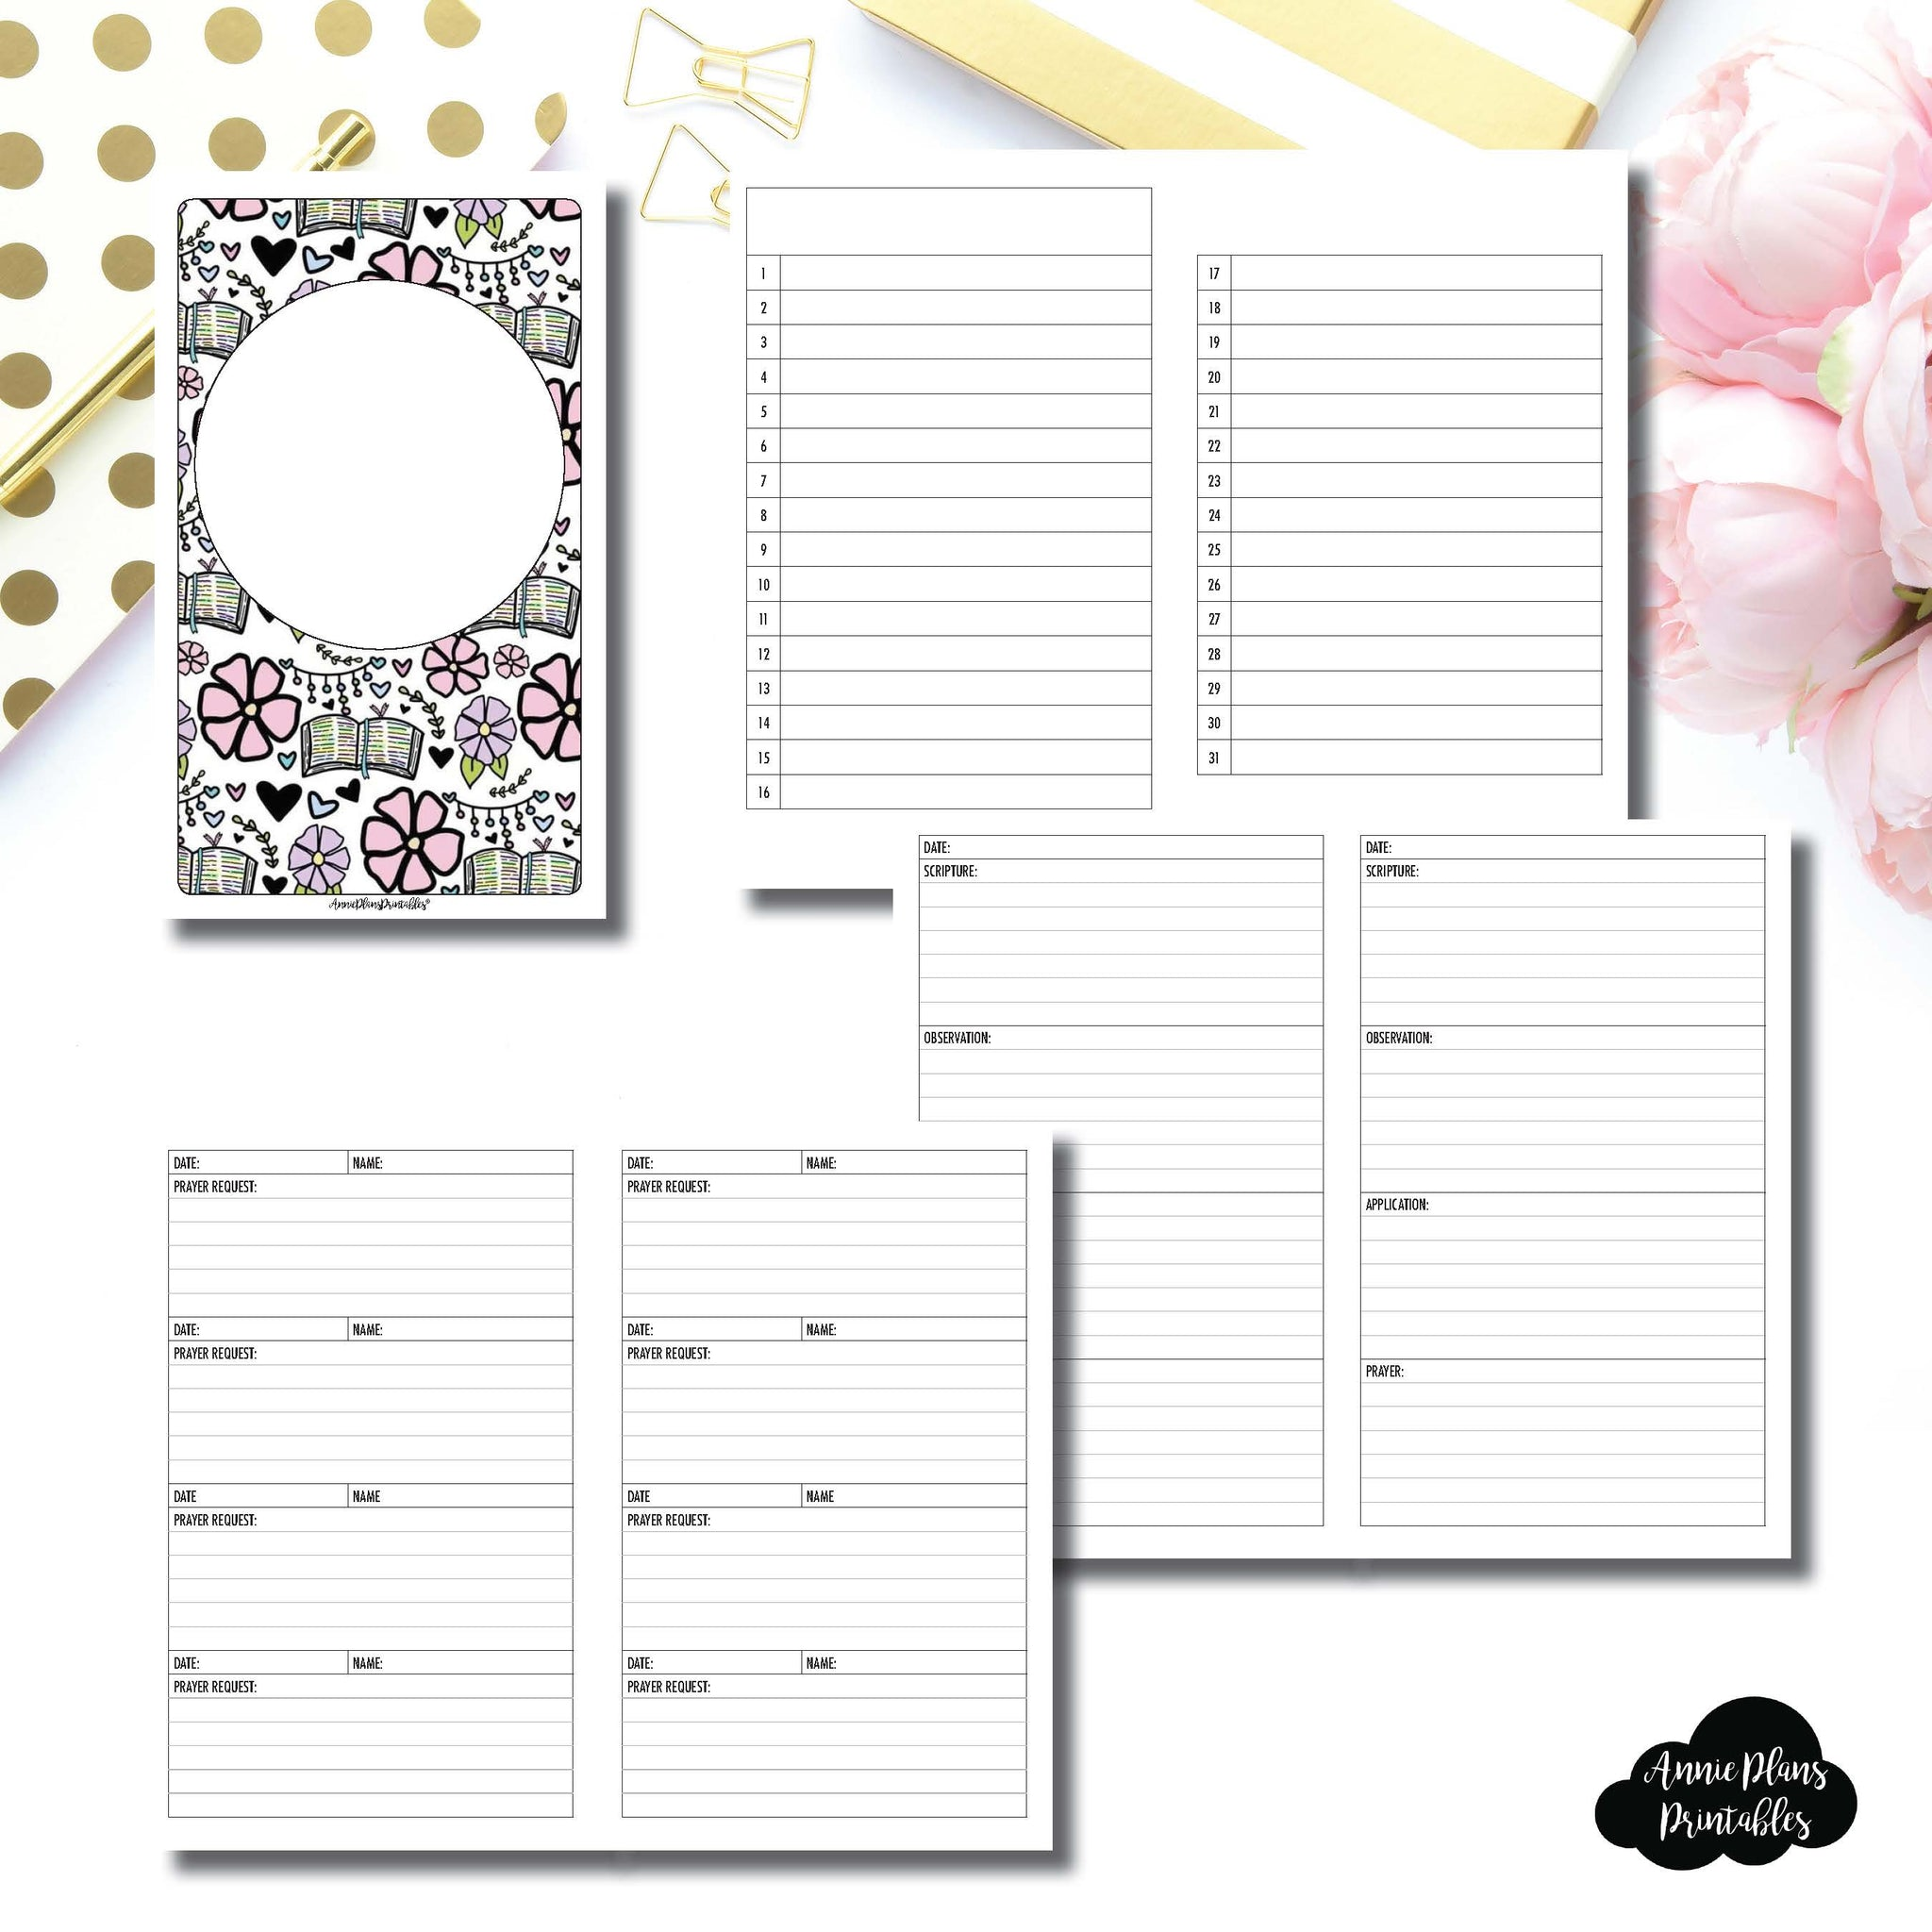 picture about Annie Plans Printables titled Cahier TN Sizing Devotional Package deal Printable Inserts ©